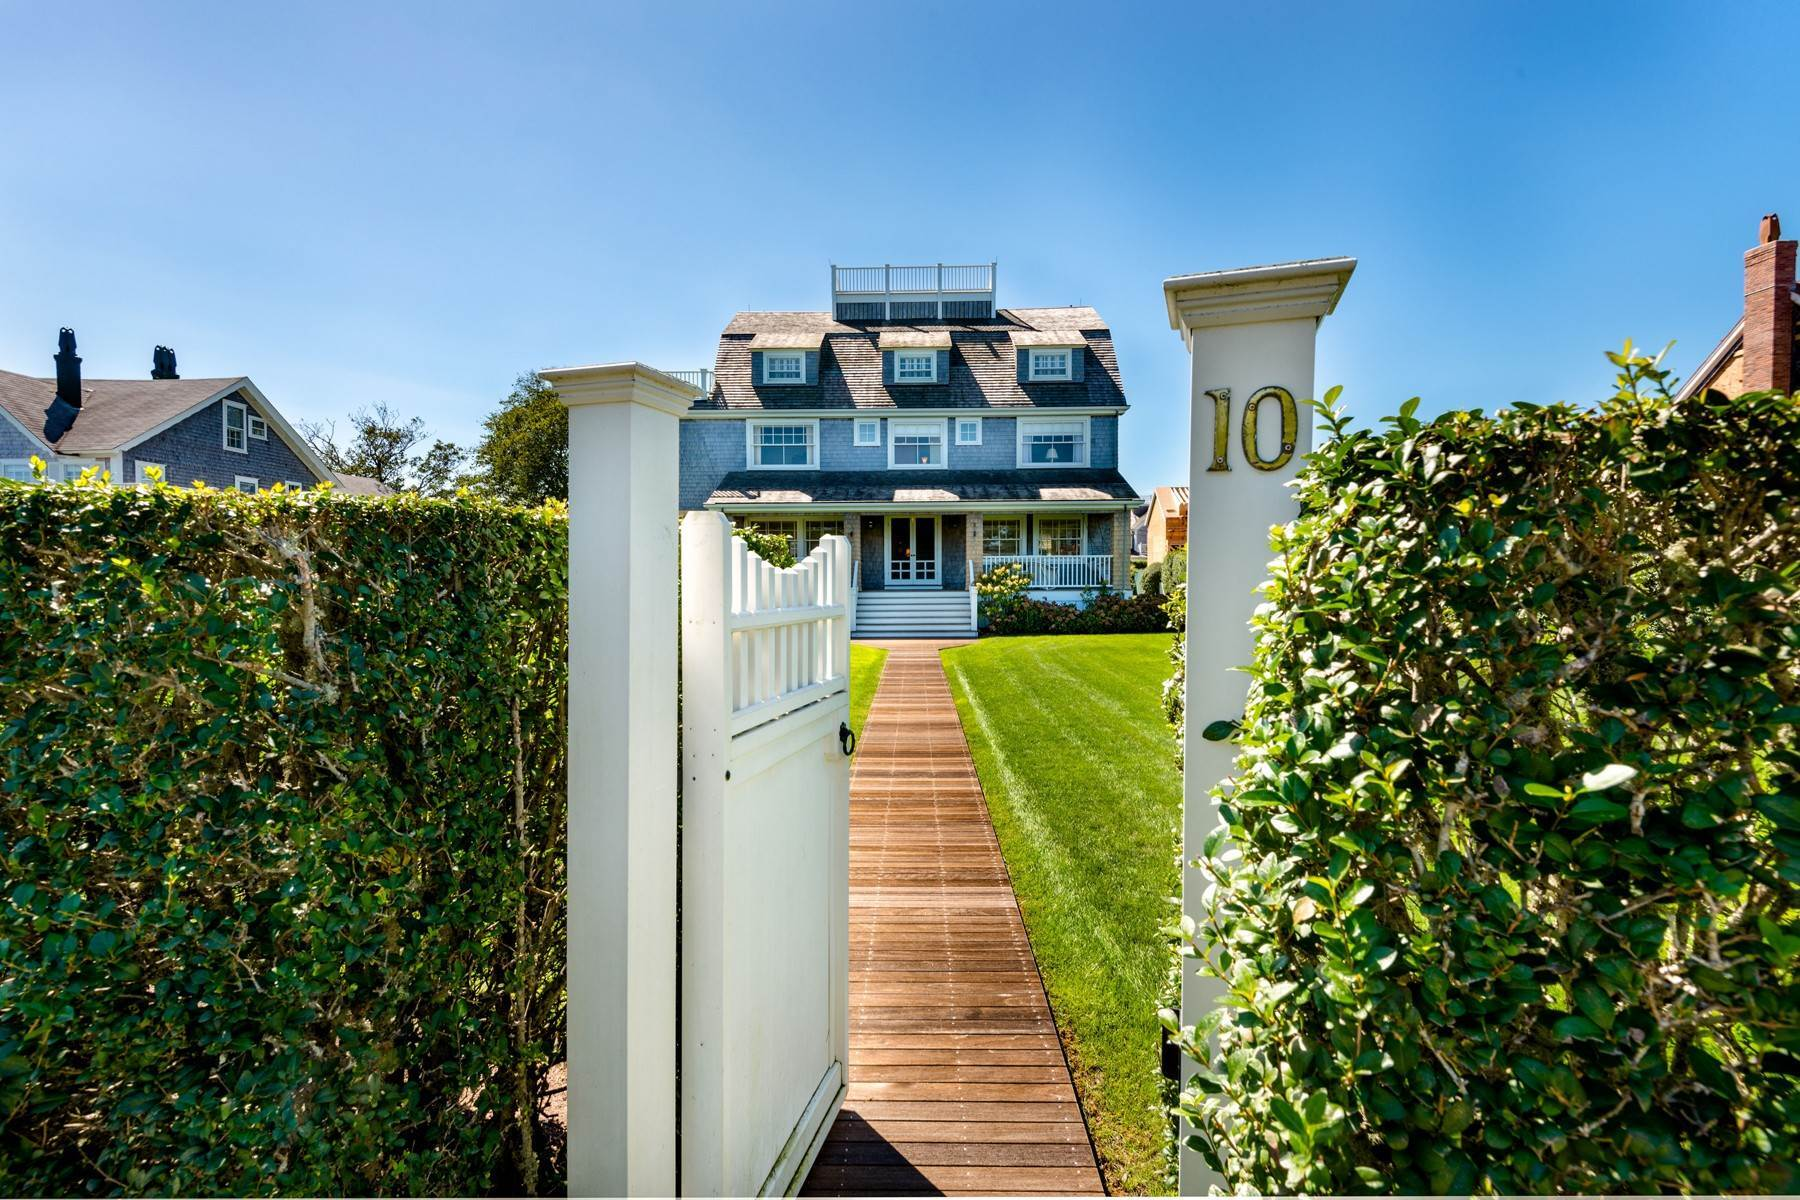 Single Family Homes για την Πώληση στο Magnificent on the Cliff 10 Lincoln Avenue, Nantucket, Μασαχουσετη 02554 Ηνωμένες Πολιτείες